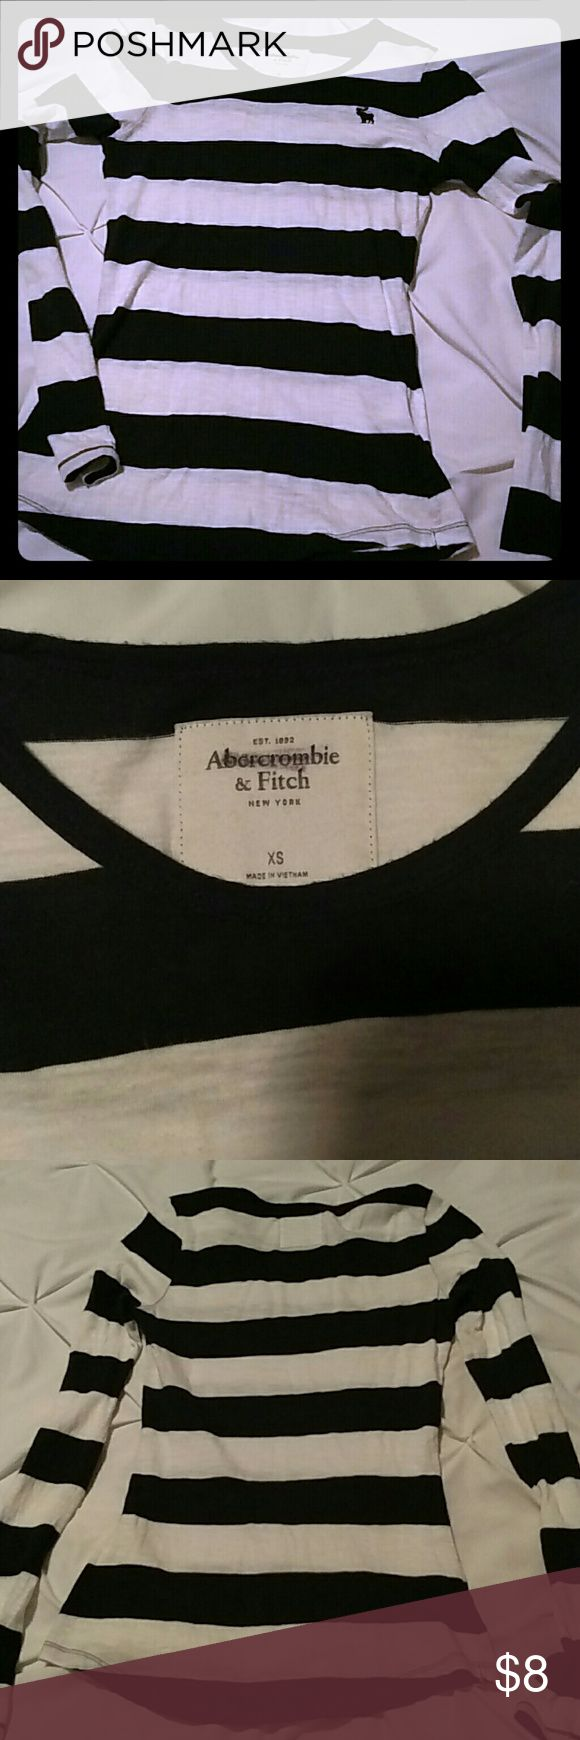 Fitted long sleeve Abercrombie and Fitch T-shirt *Abercrombie and Fitch * Long sleeve tee * Very soft fabric * Light wear Abercrombie & Fitch Tops Tees - Long Sleeve